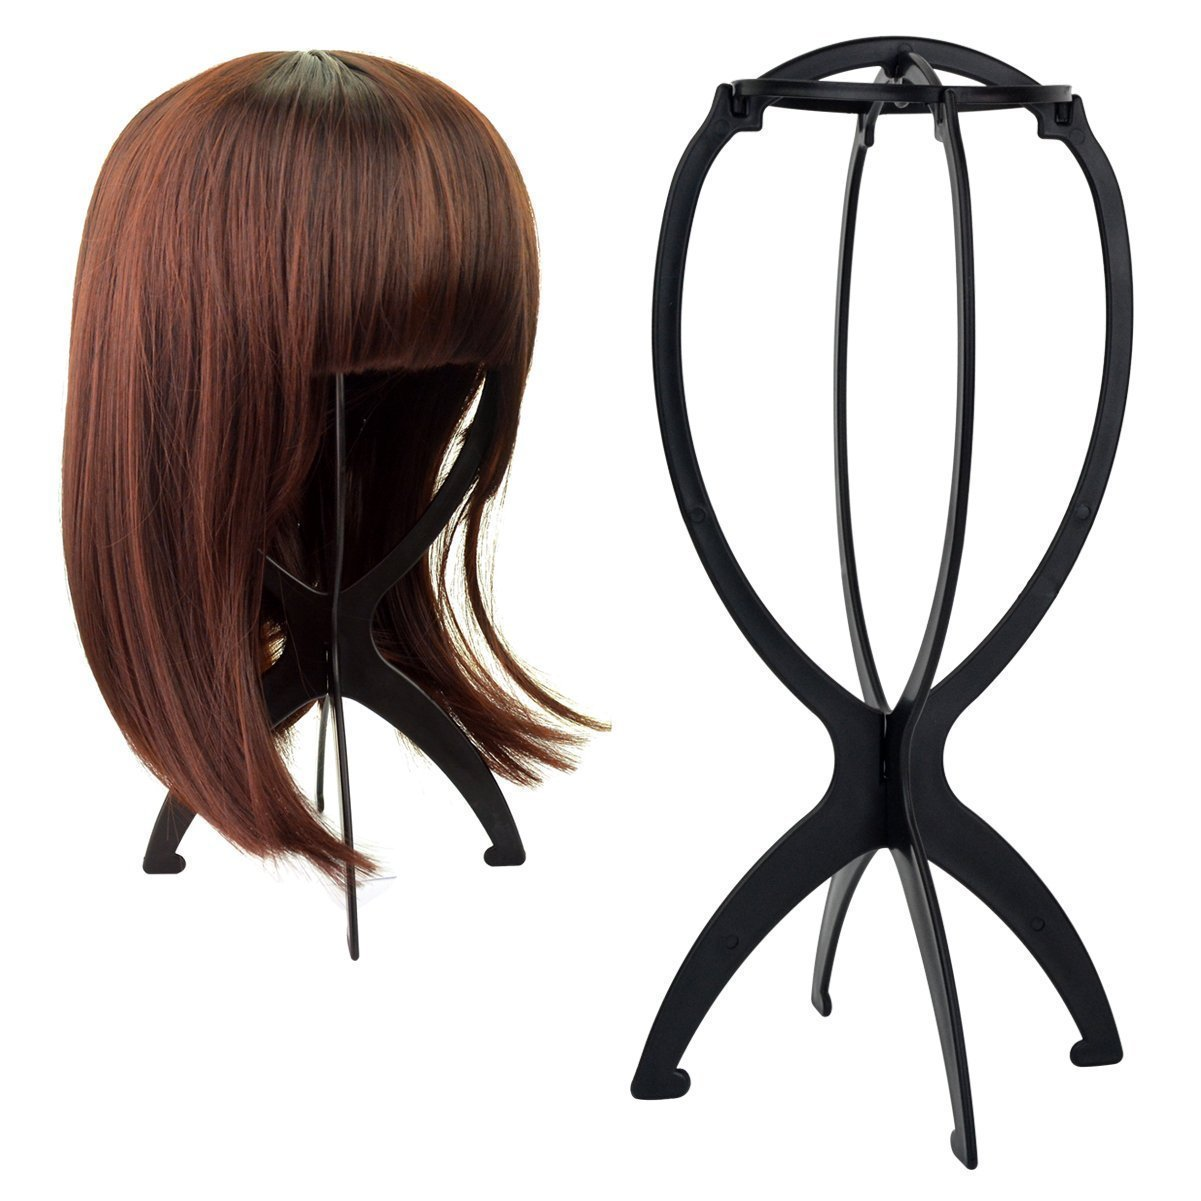 TOOTO Pack Of 6 Black Collapsible Wig Stand, ERPower Portable Wig Stand, Wig Dryer (6, Black)